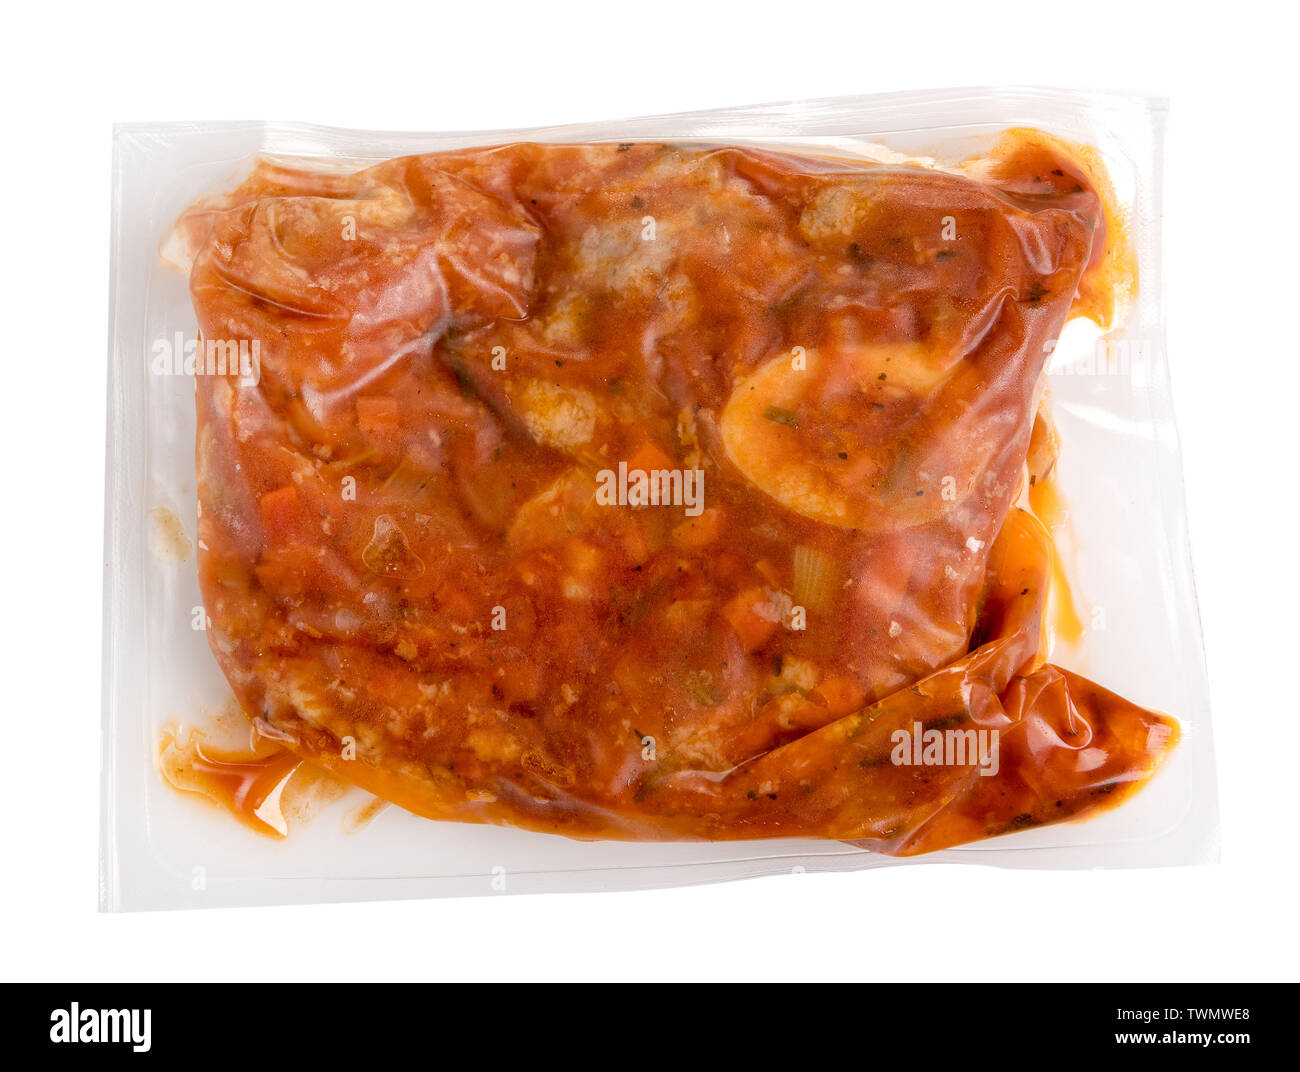 Vacuum packed meal of prepared ossobucco with veal in a wine and fruit sauce in an air-tight plastic bag for freezing or to extend shelf life - Stock Image